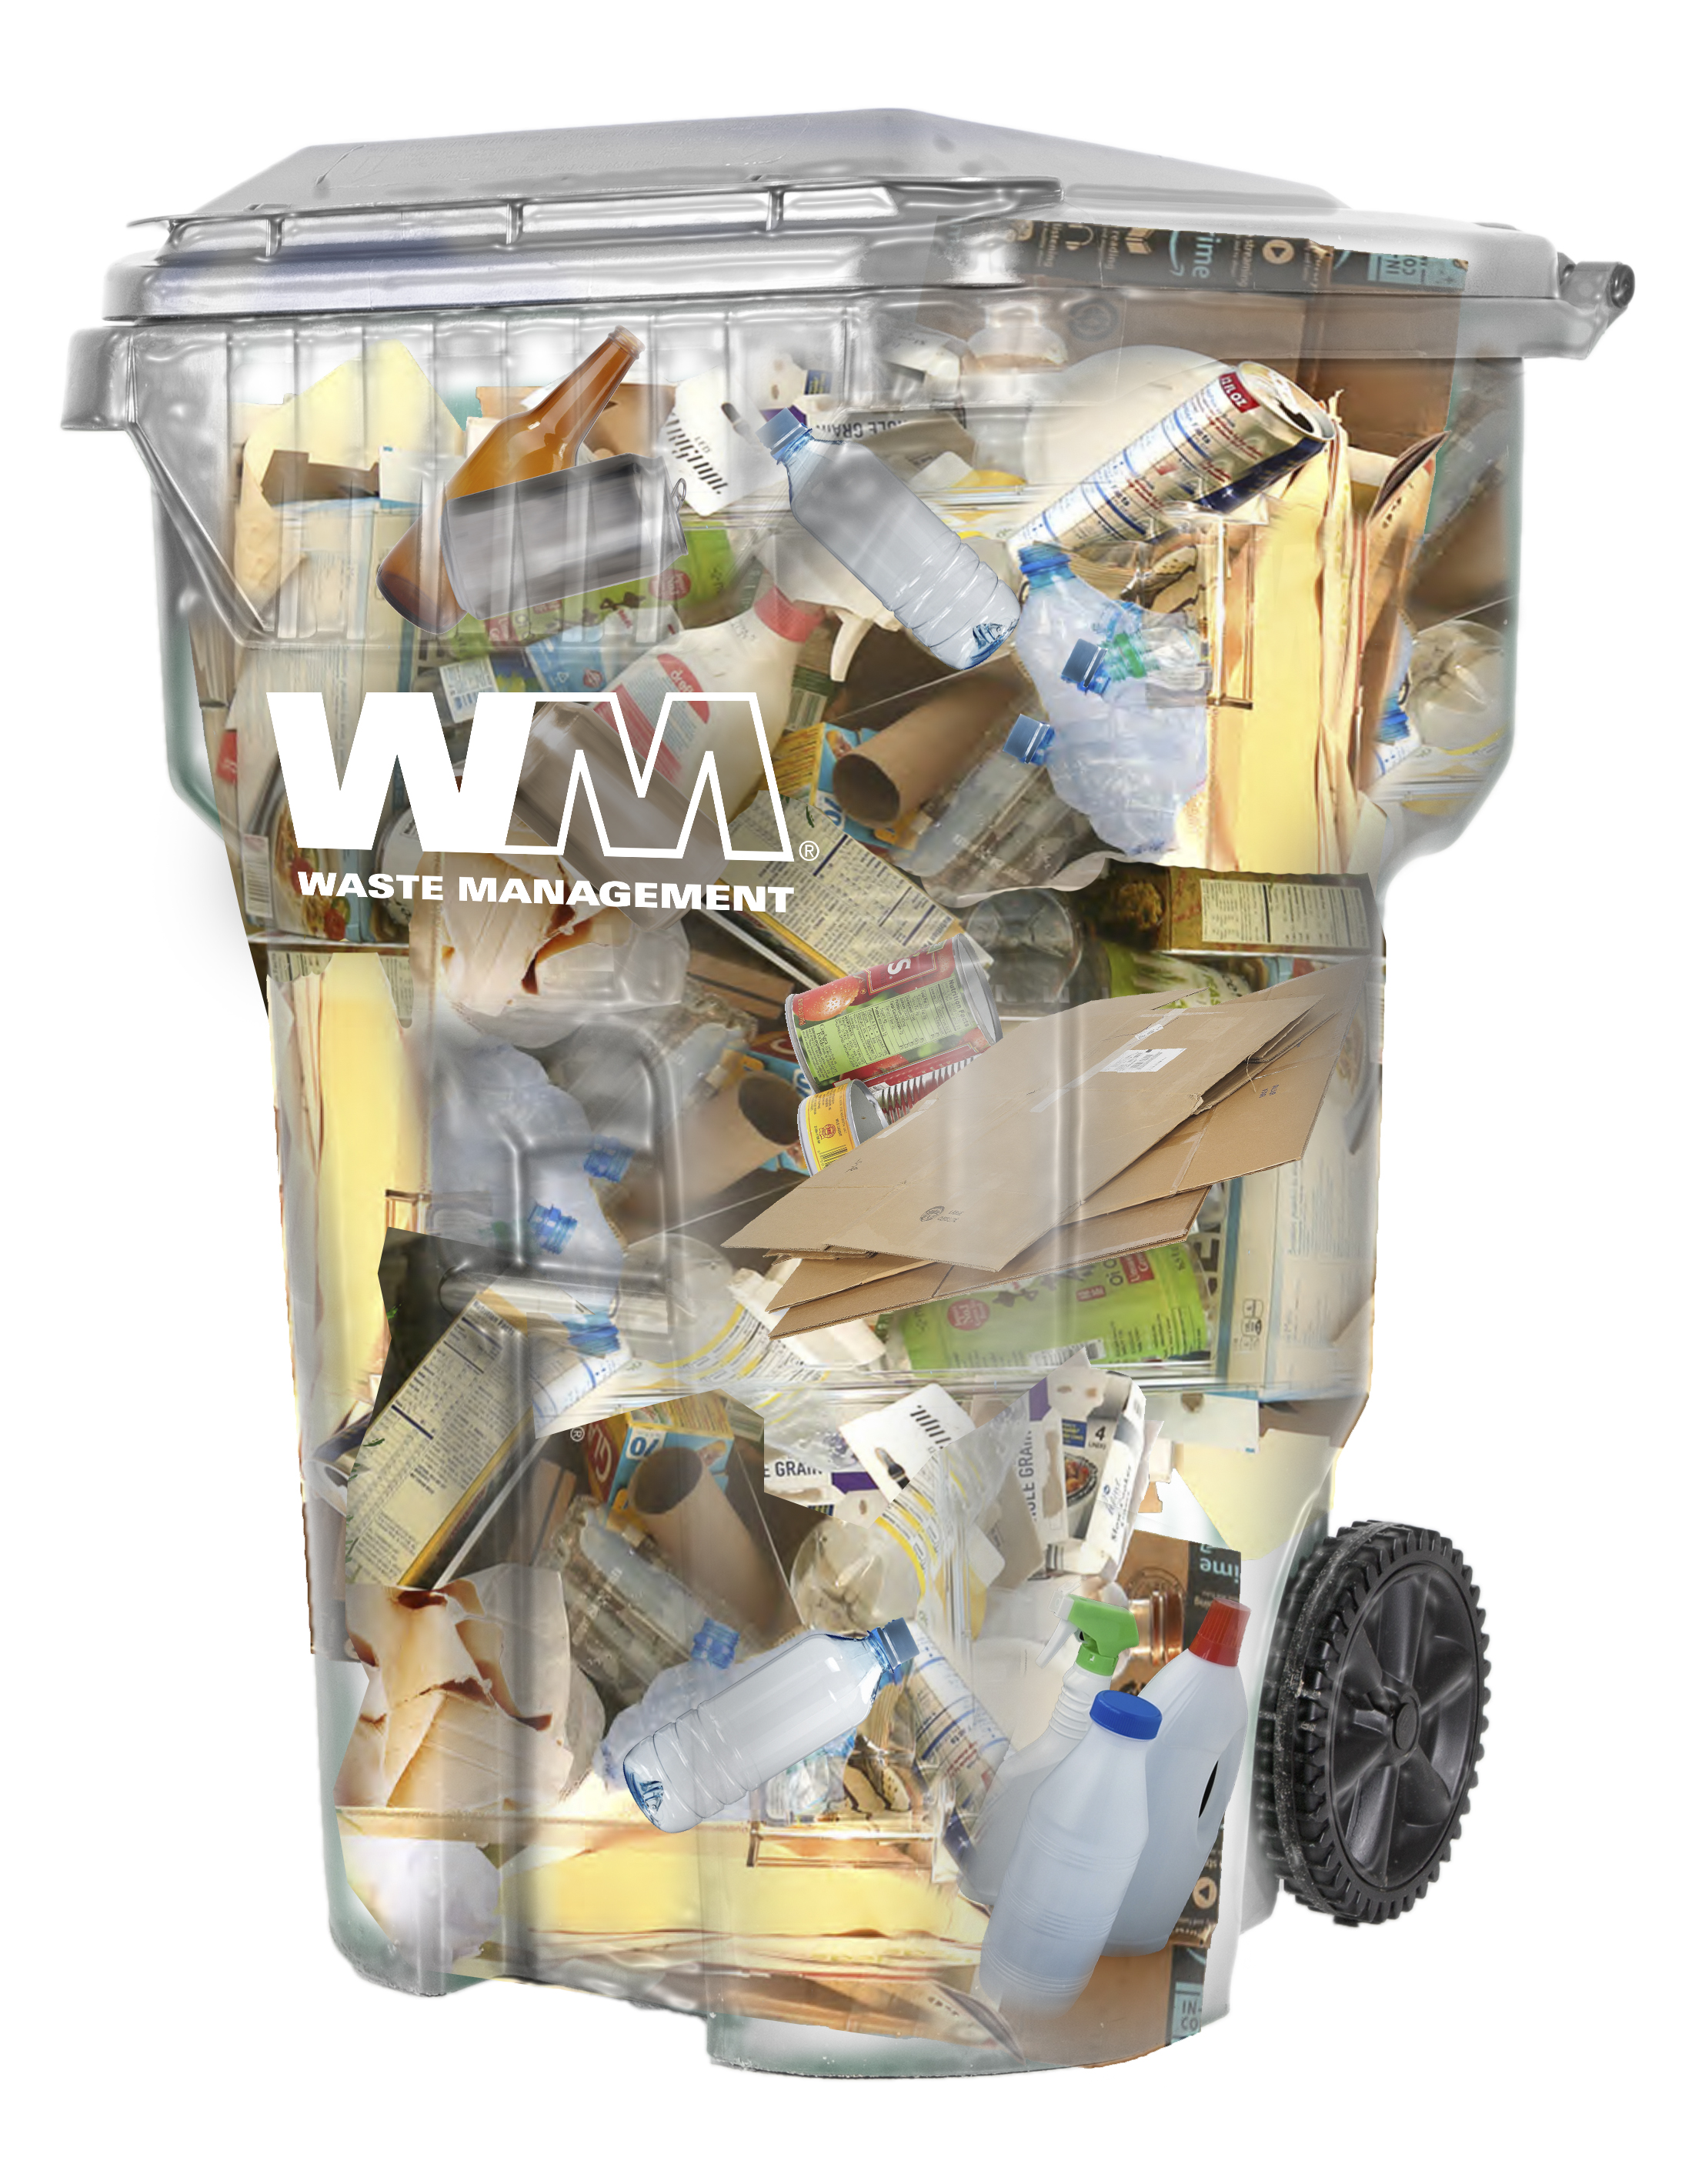 Wm Holiday Schedule 2020 Christmas Corona California Waste Services   Recycling Services Corona CA